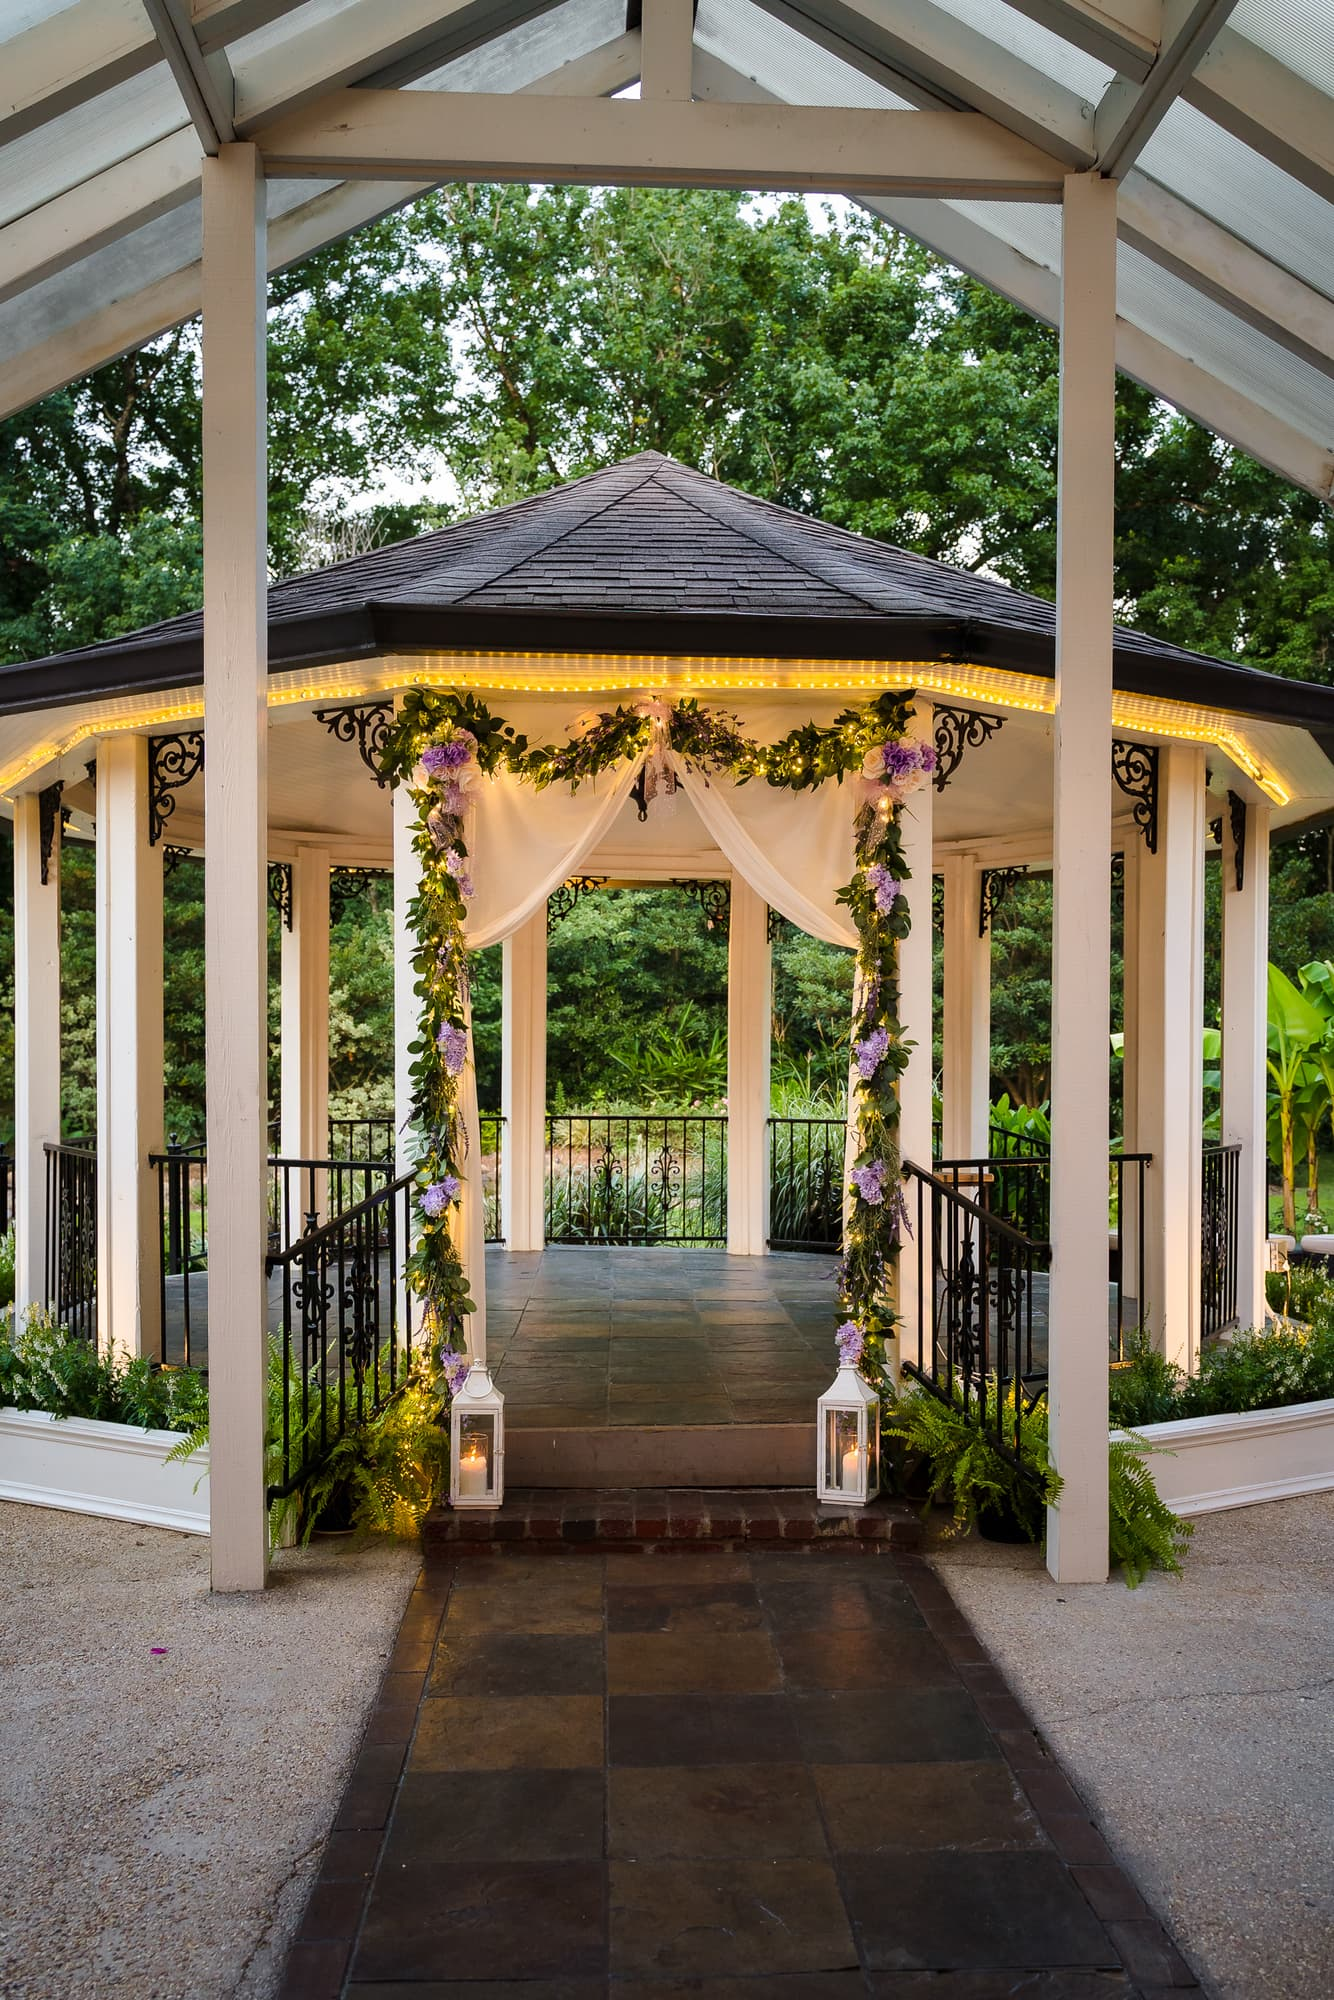 The Gatehouse Baton Rouge Wedding ceremony location lit up